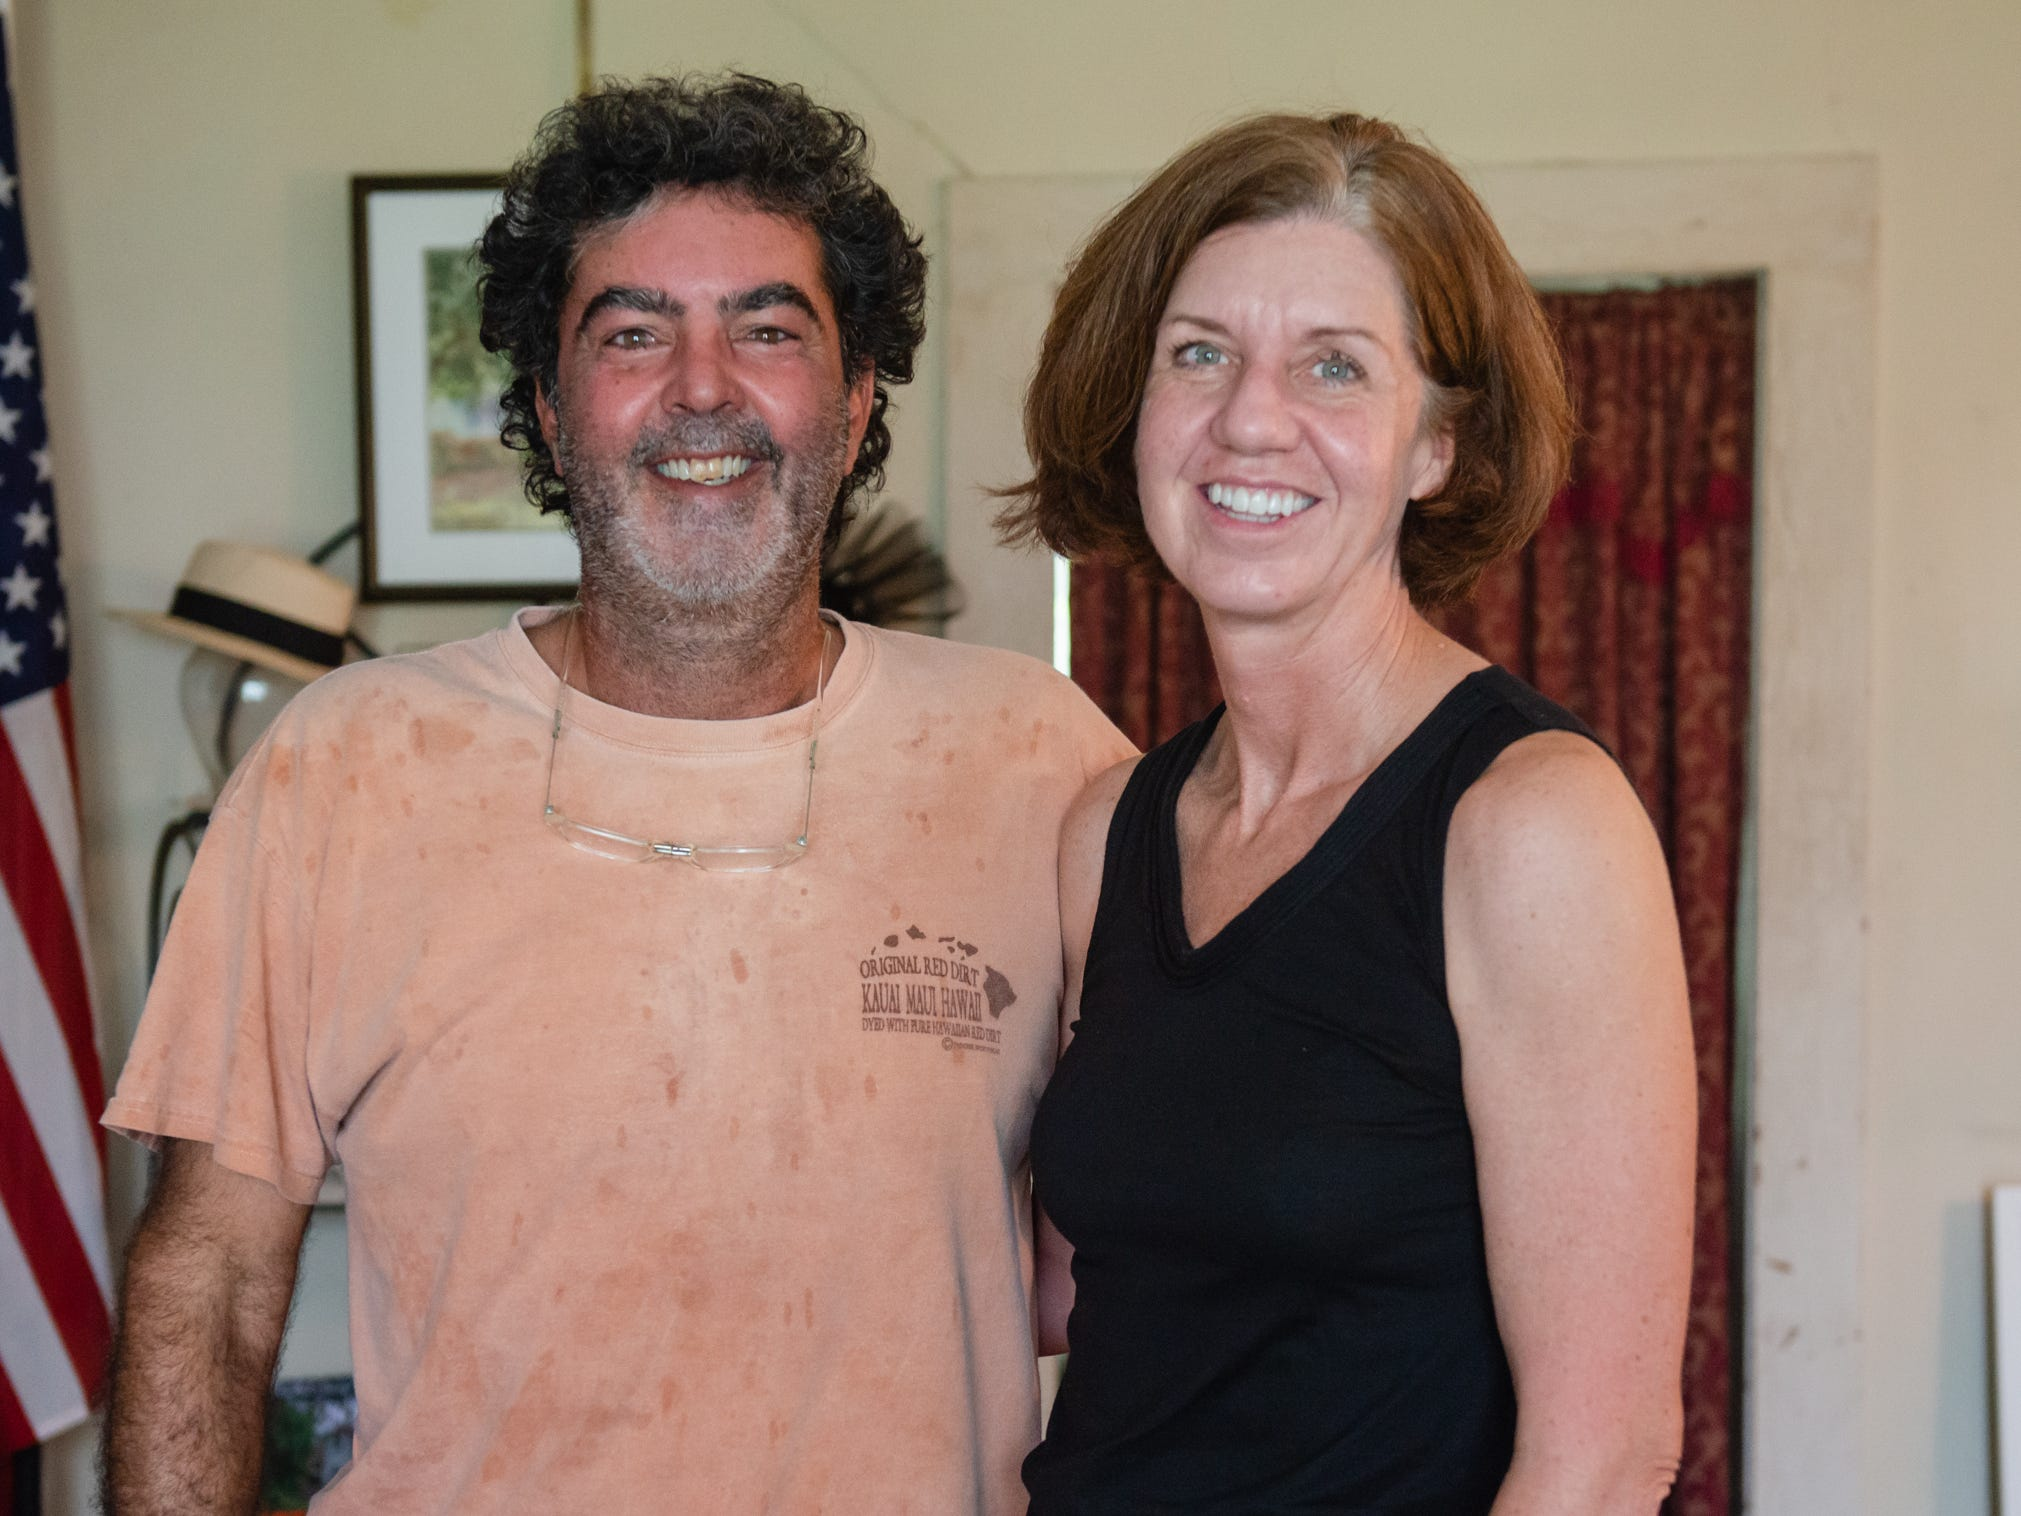 Anne and David Finley at the Christmas in July event, which raised money to restore the Green Gables Victorian house in Melbourne.